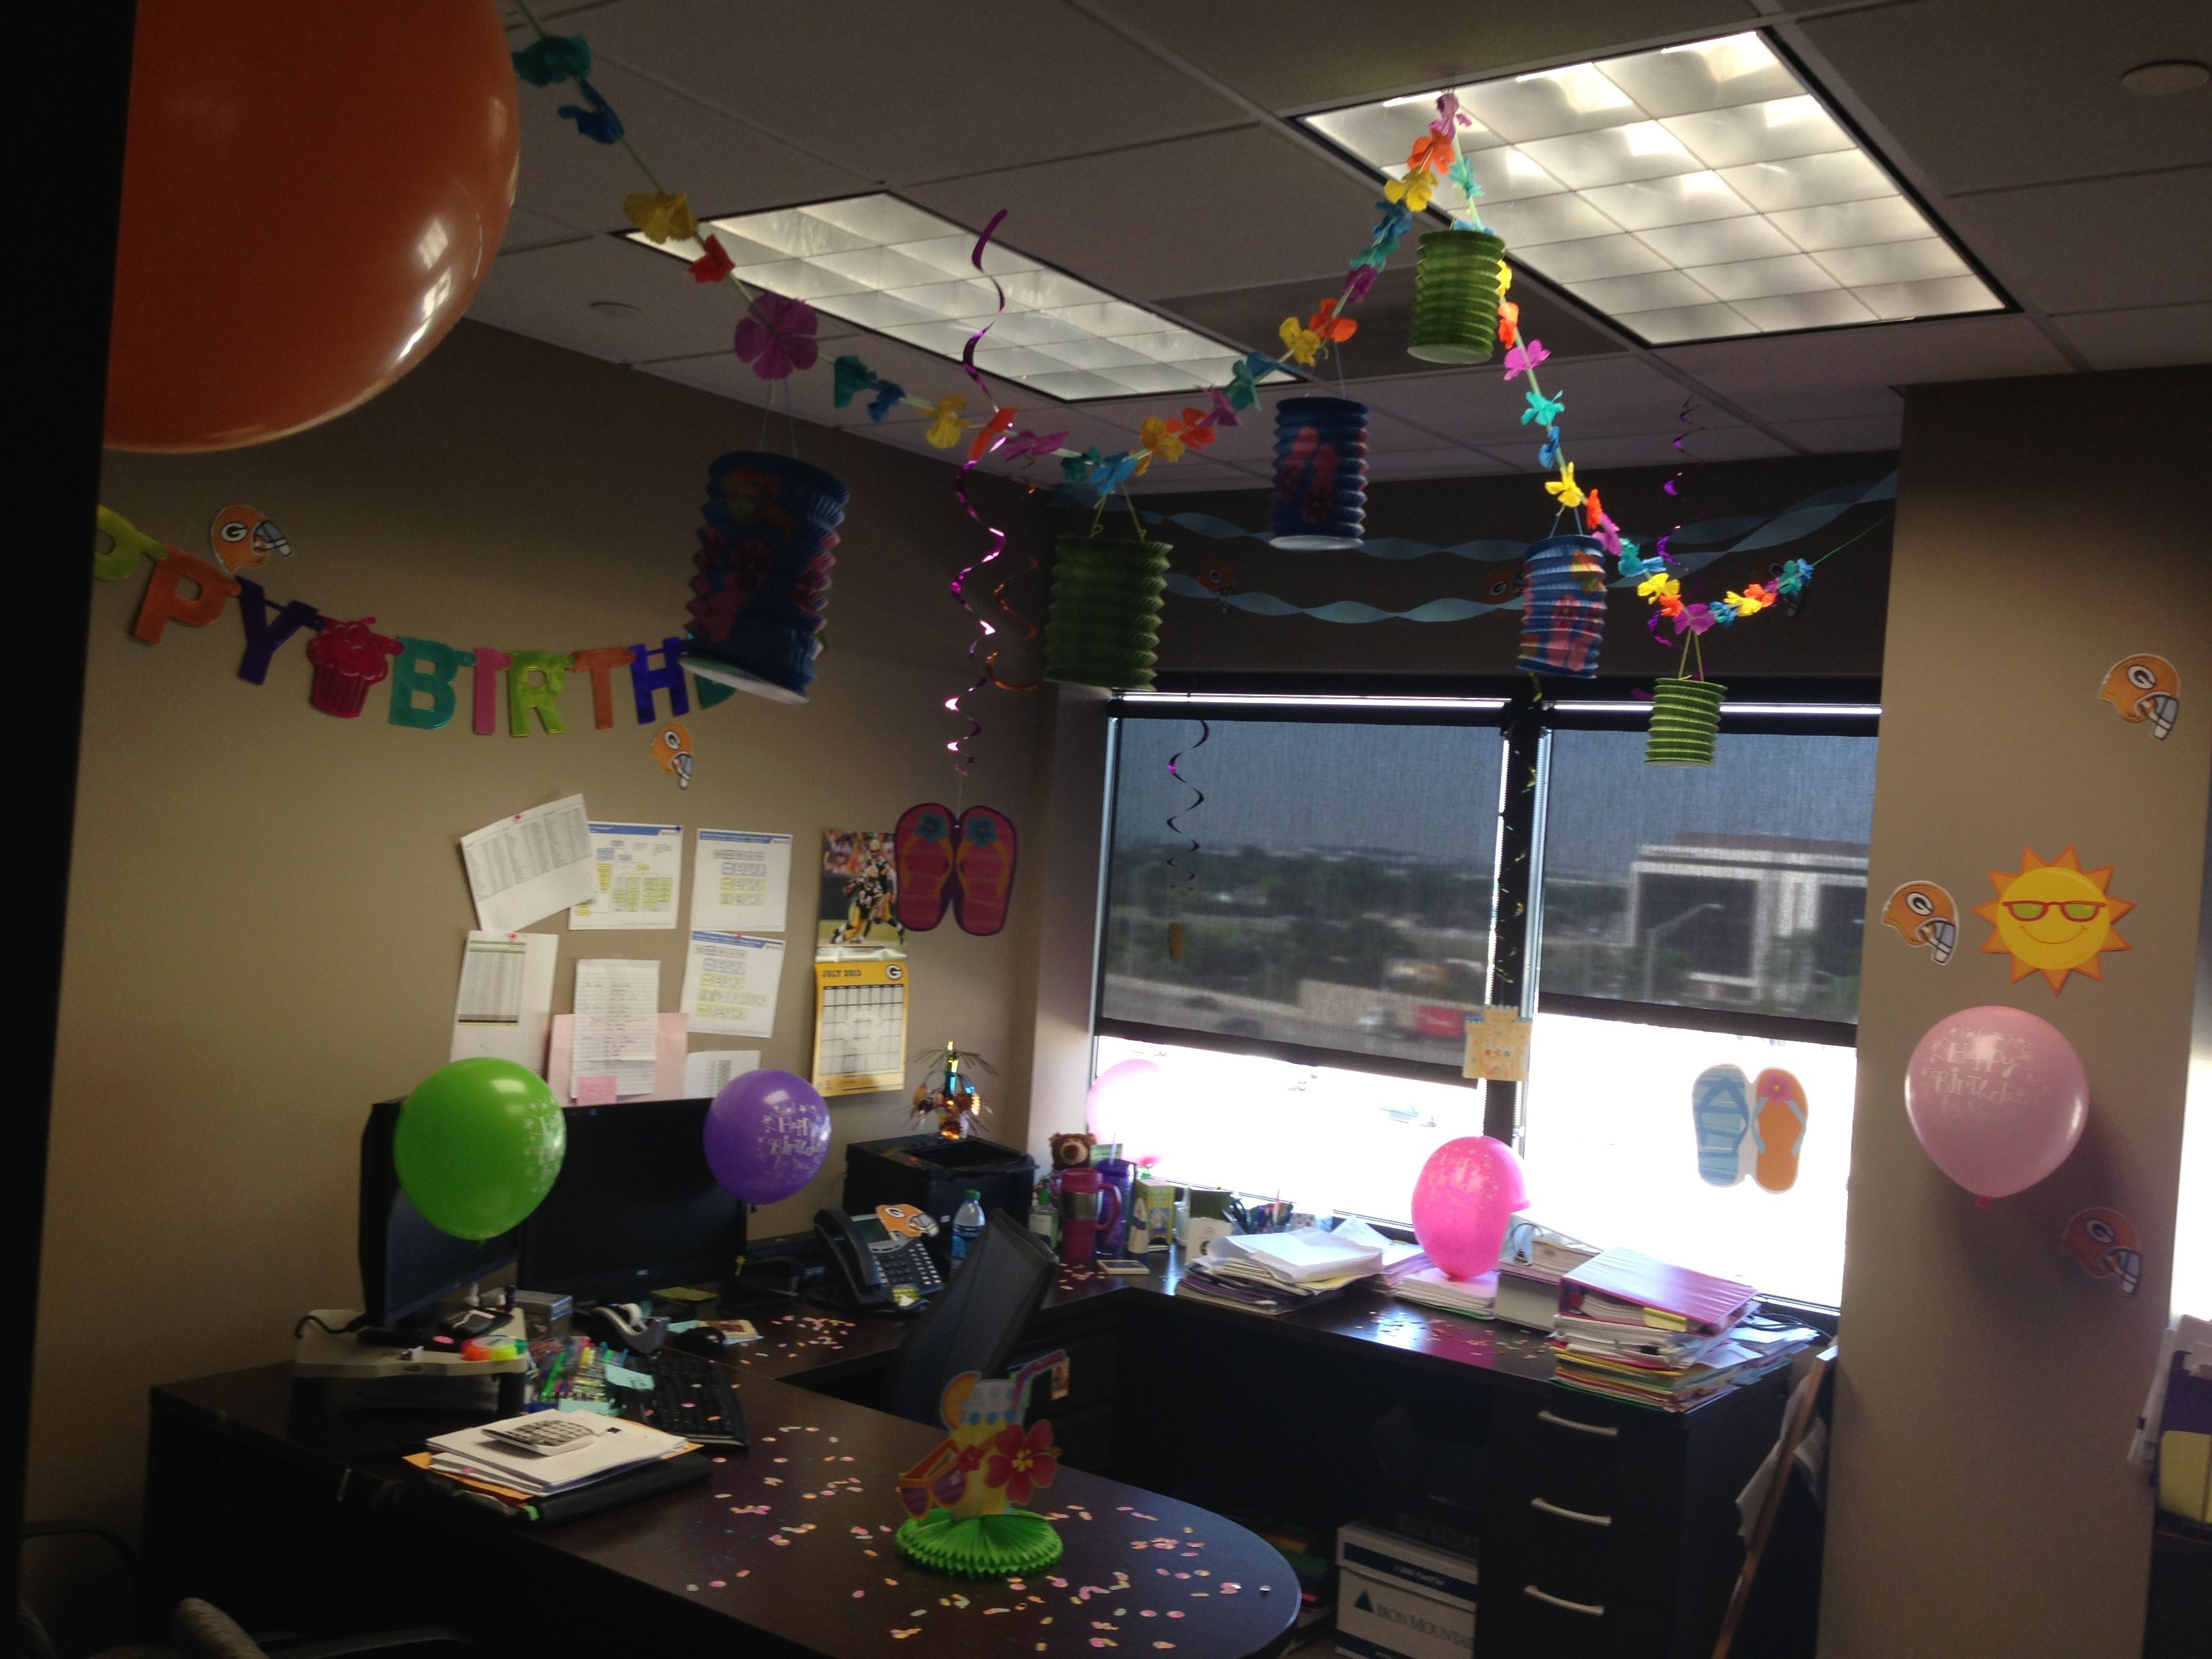 Office Birthday Decor Celebrate Your Employees Birthday With Streamers, Confetti,